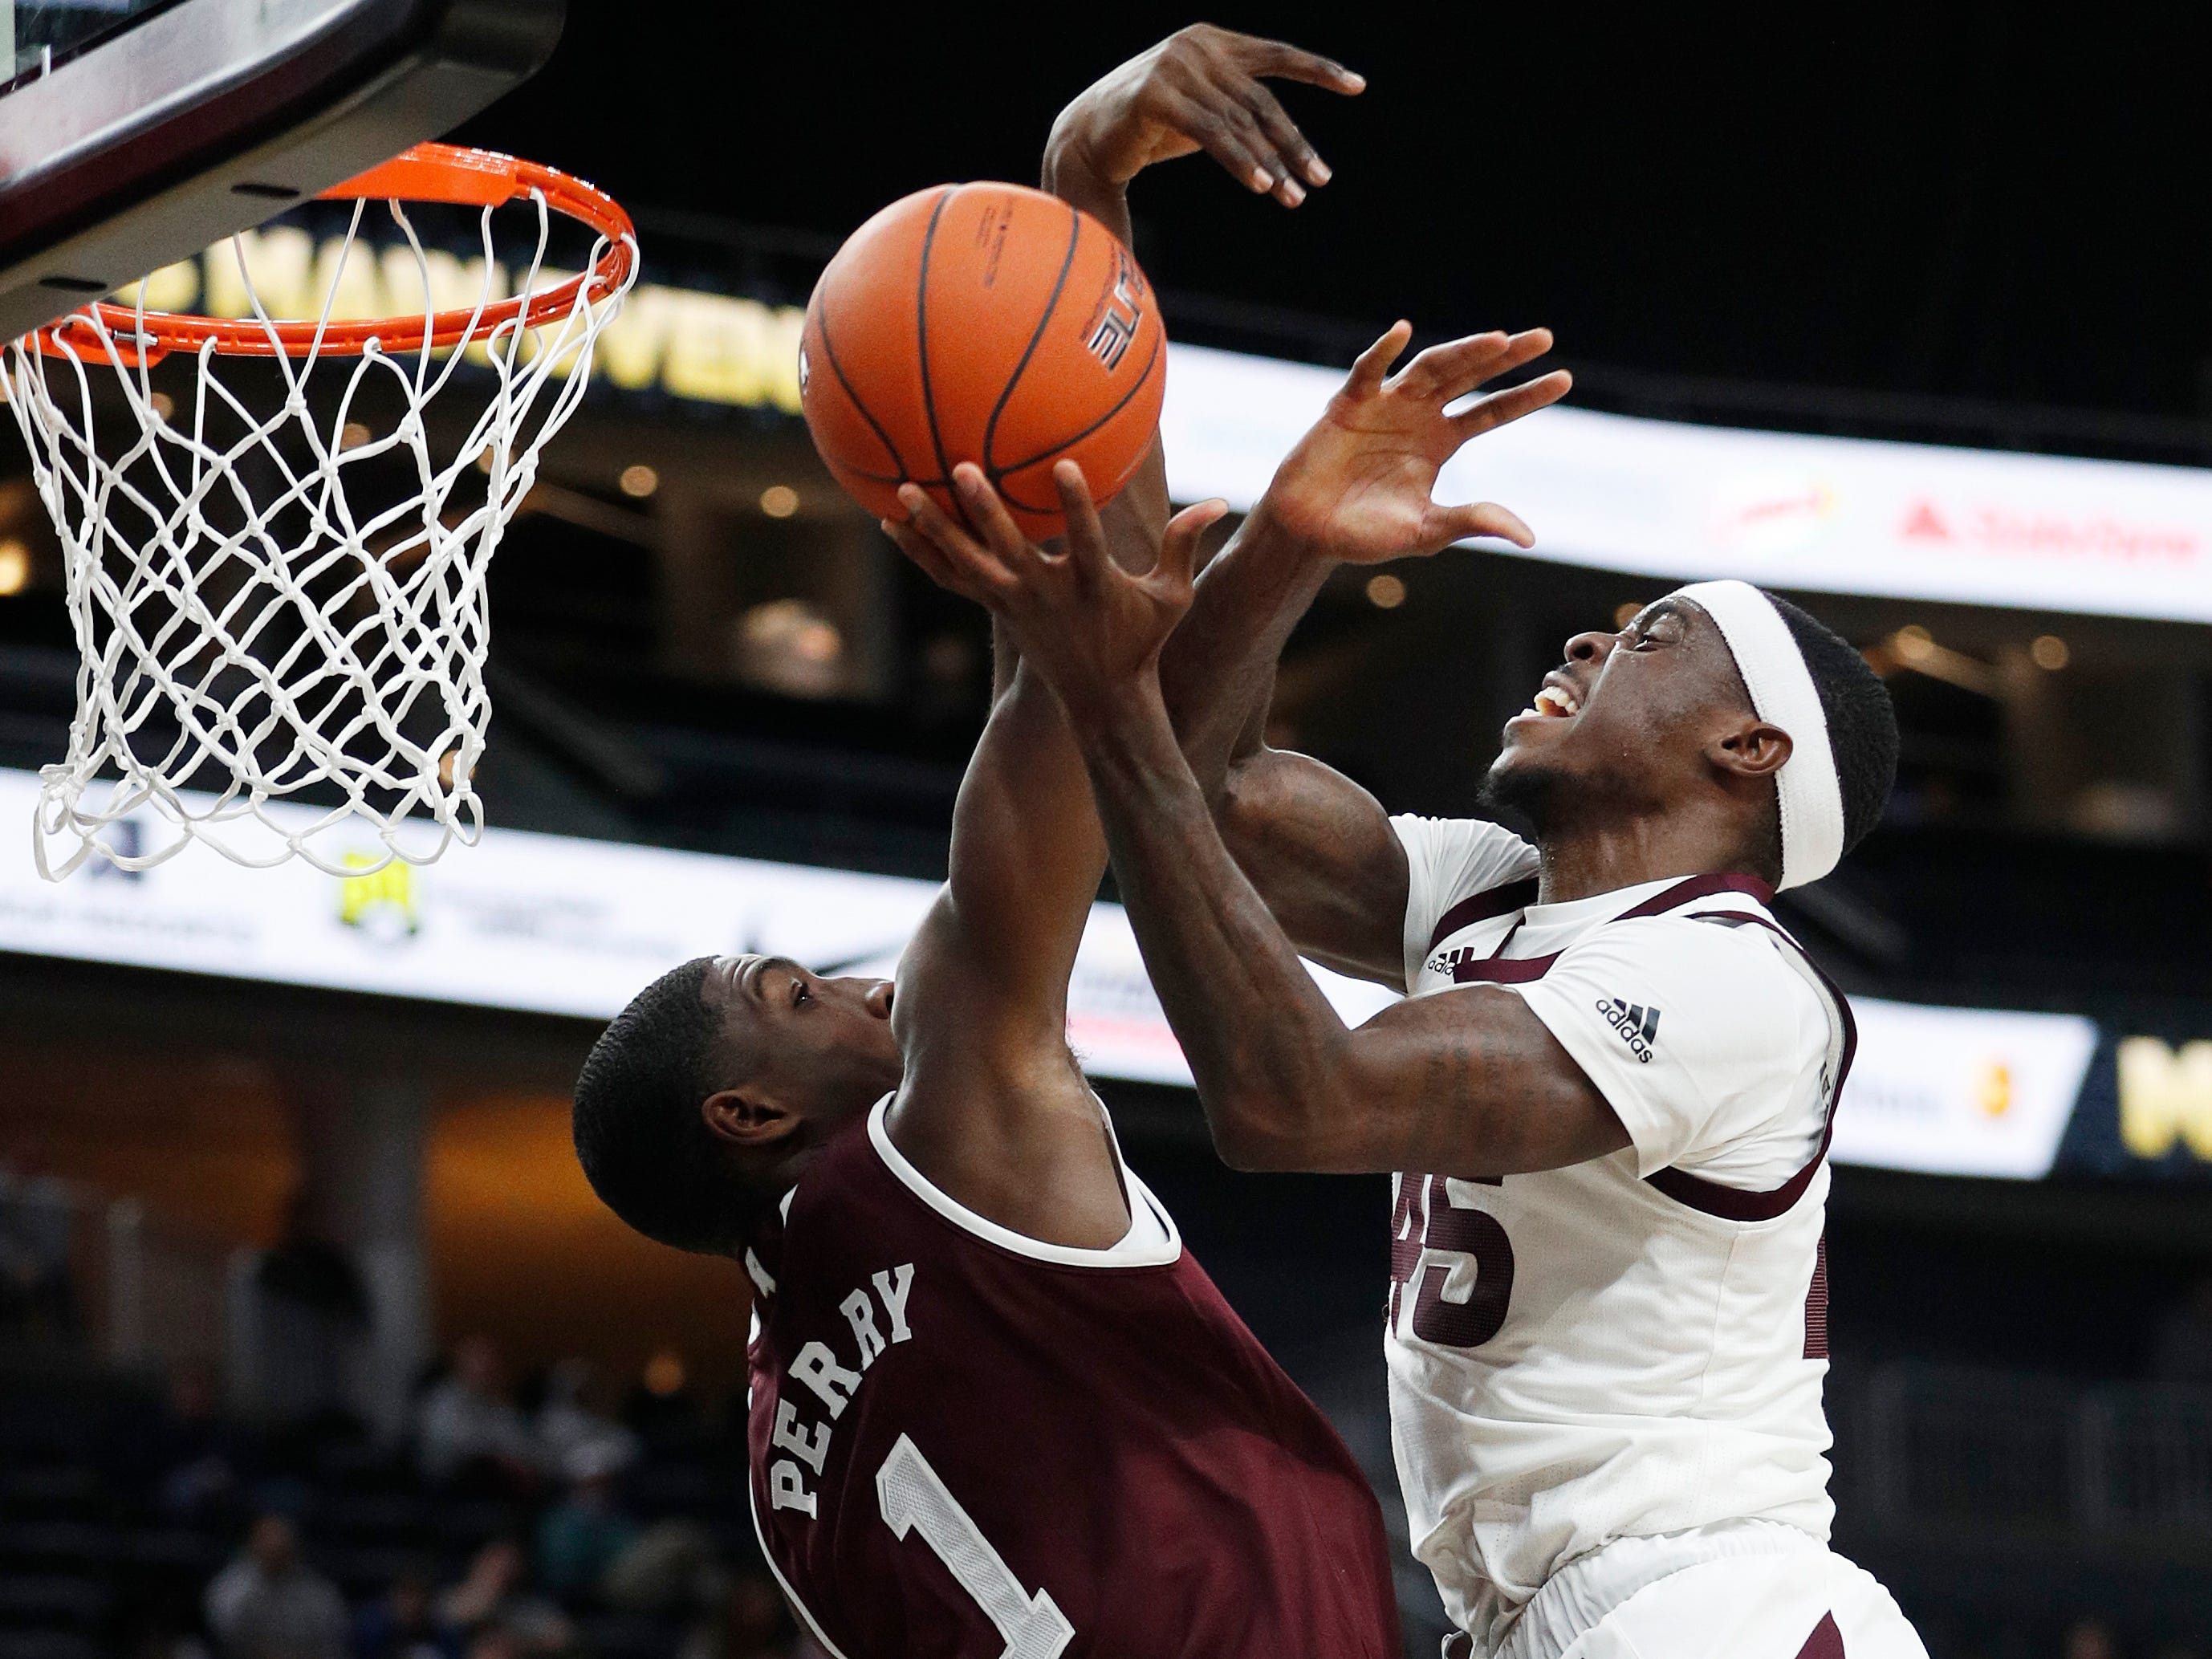 Arizona State's Zylan Cheatham (45) attempts a shot over Mississippi State's Reggie Perry (1) during the first half of a NCAA college basketball game, Monday, Nov. 19, 2018, in Las Vegas. (AP Photo/John Locher)